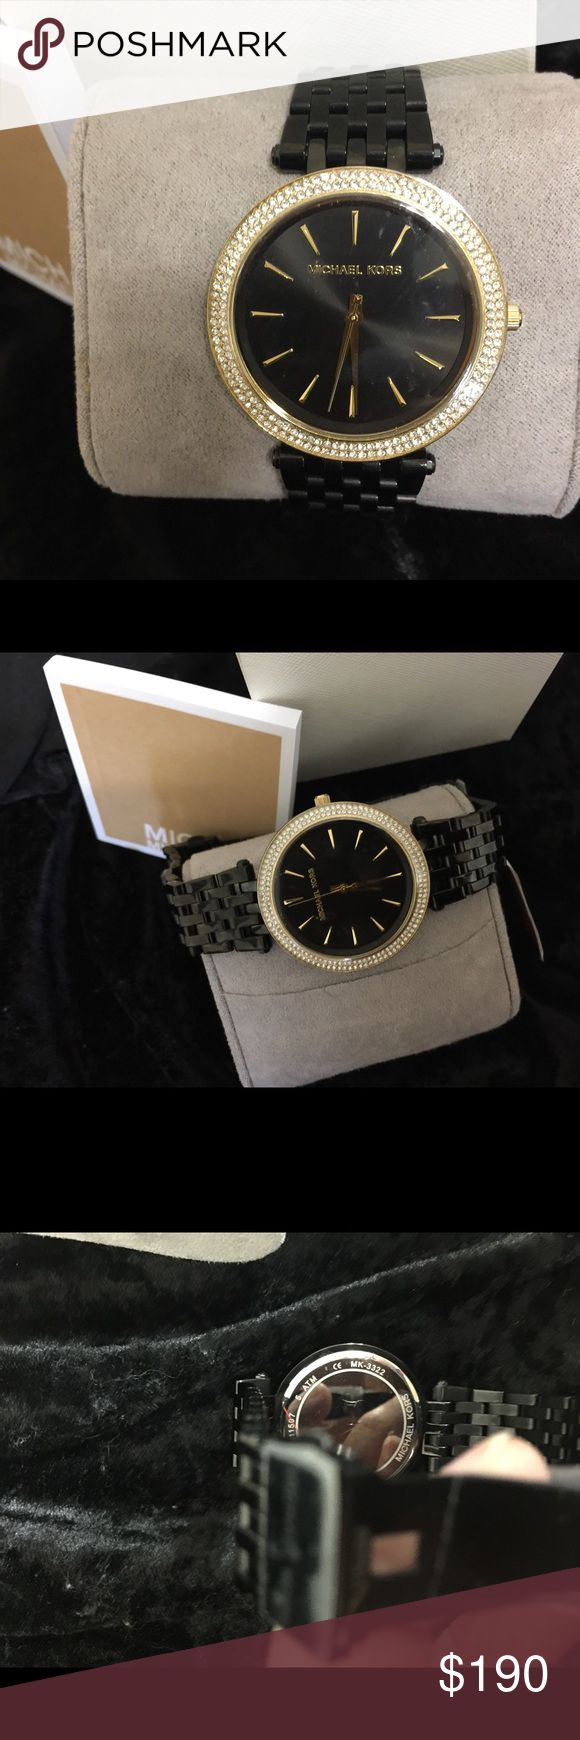 MICHAEL KORS LADIES WATCH ⌚️ Brand new MK watch with black face and black stripe !! Michael Kors Accessories Watches